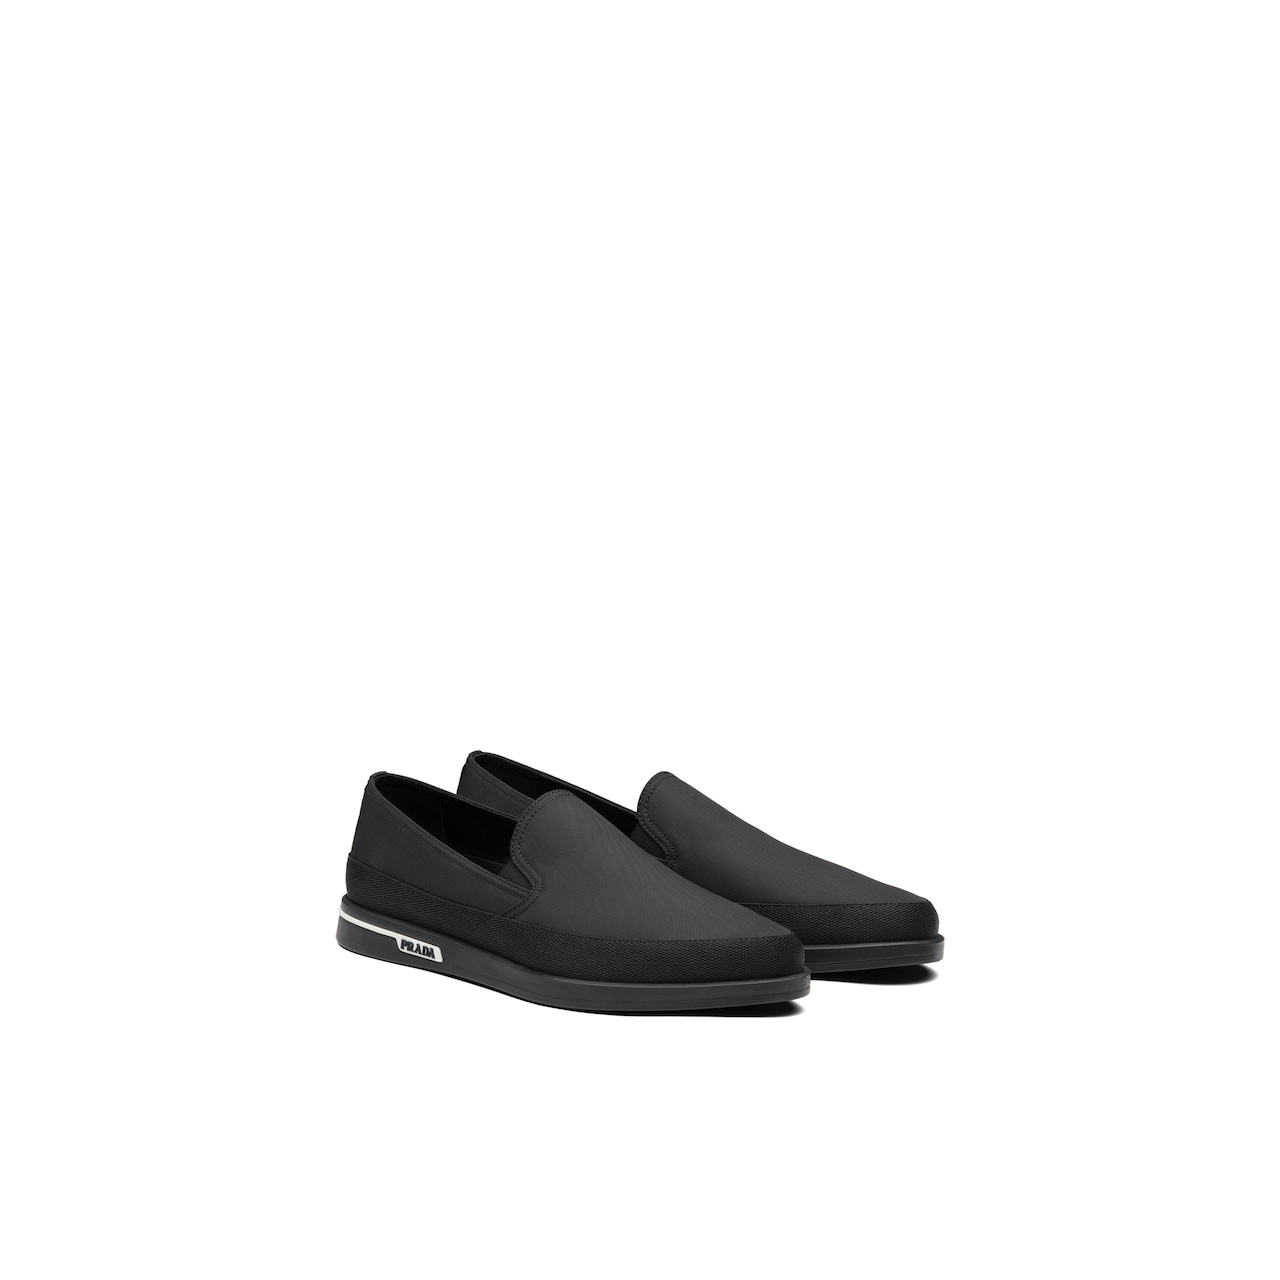 Saint Tropez Technical Fabric Slip-On Sneakers